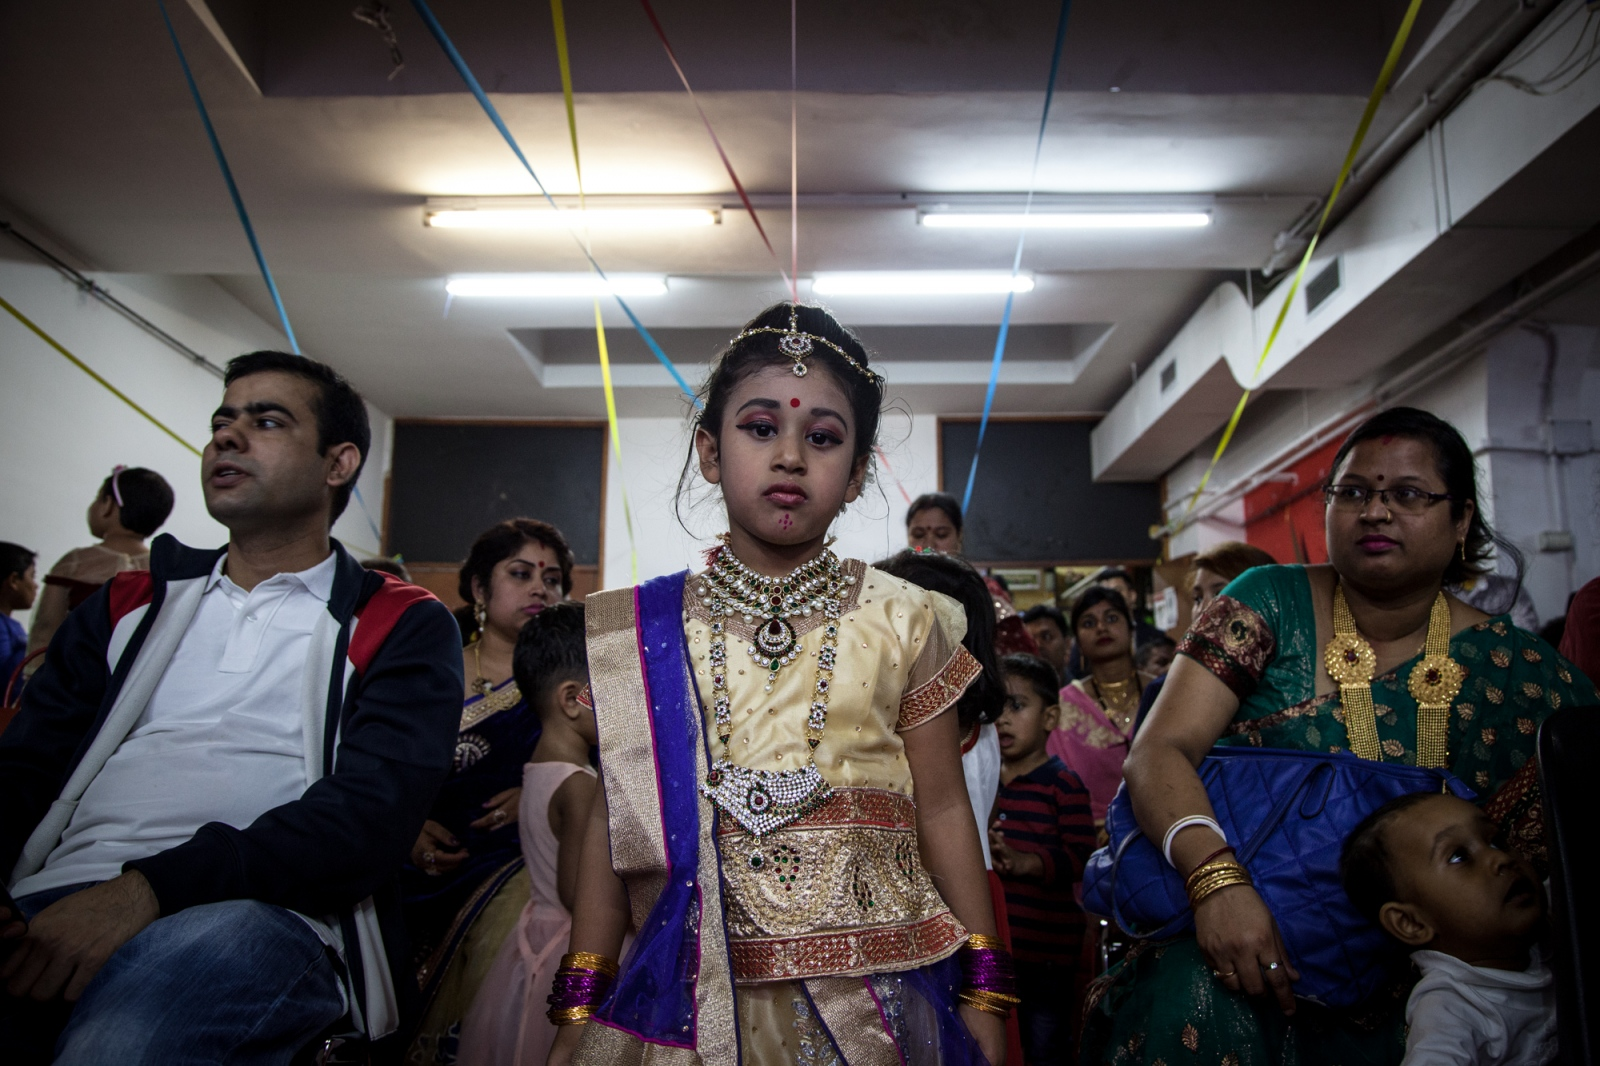 Sept. 29, 2017 - A young girl in traditional Hindu clothes poses for a portrait during Durga Puja celebration. night, in one of the many rooms that the Hindu community has rented for the holiday in Torpignattara, a working class neighborhood in southeast Rome.